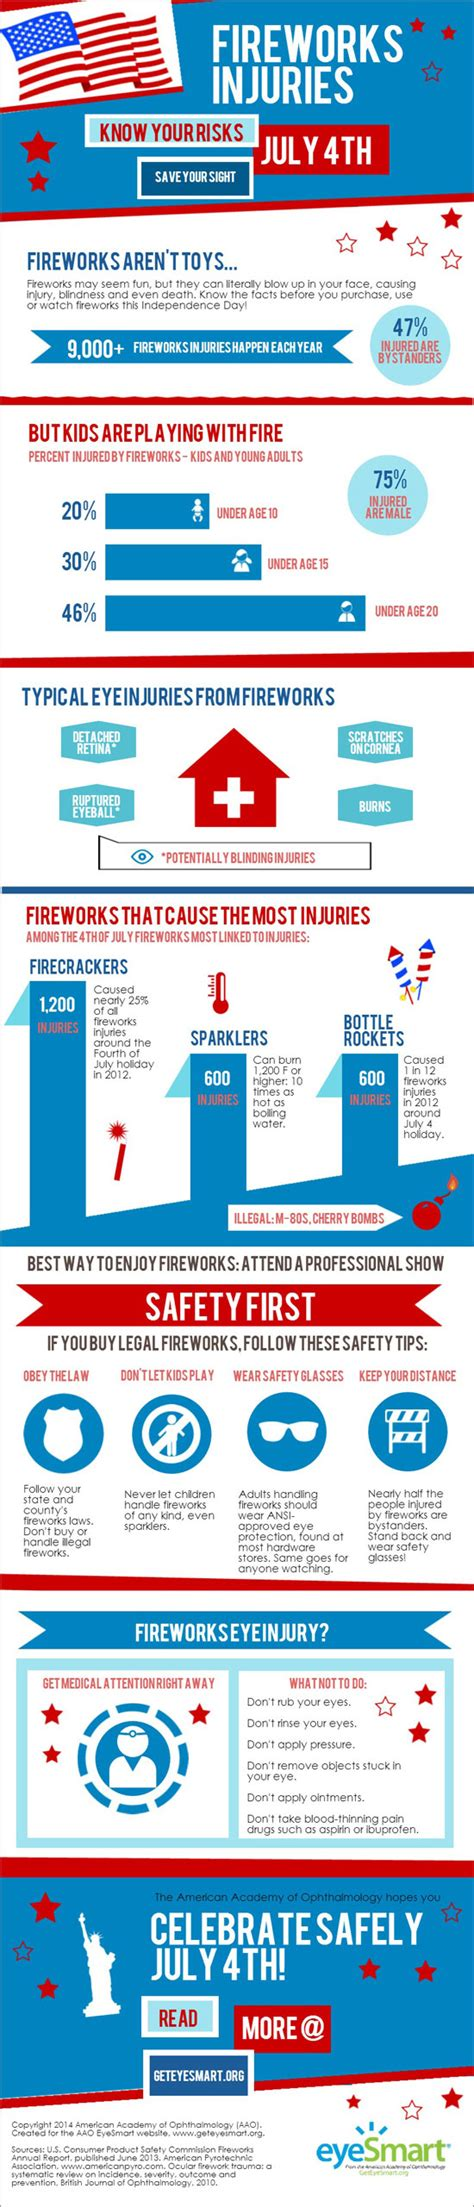 3 day blinds infographic fireworks injuries academy of